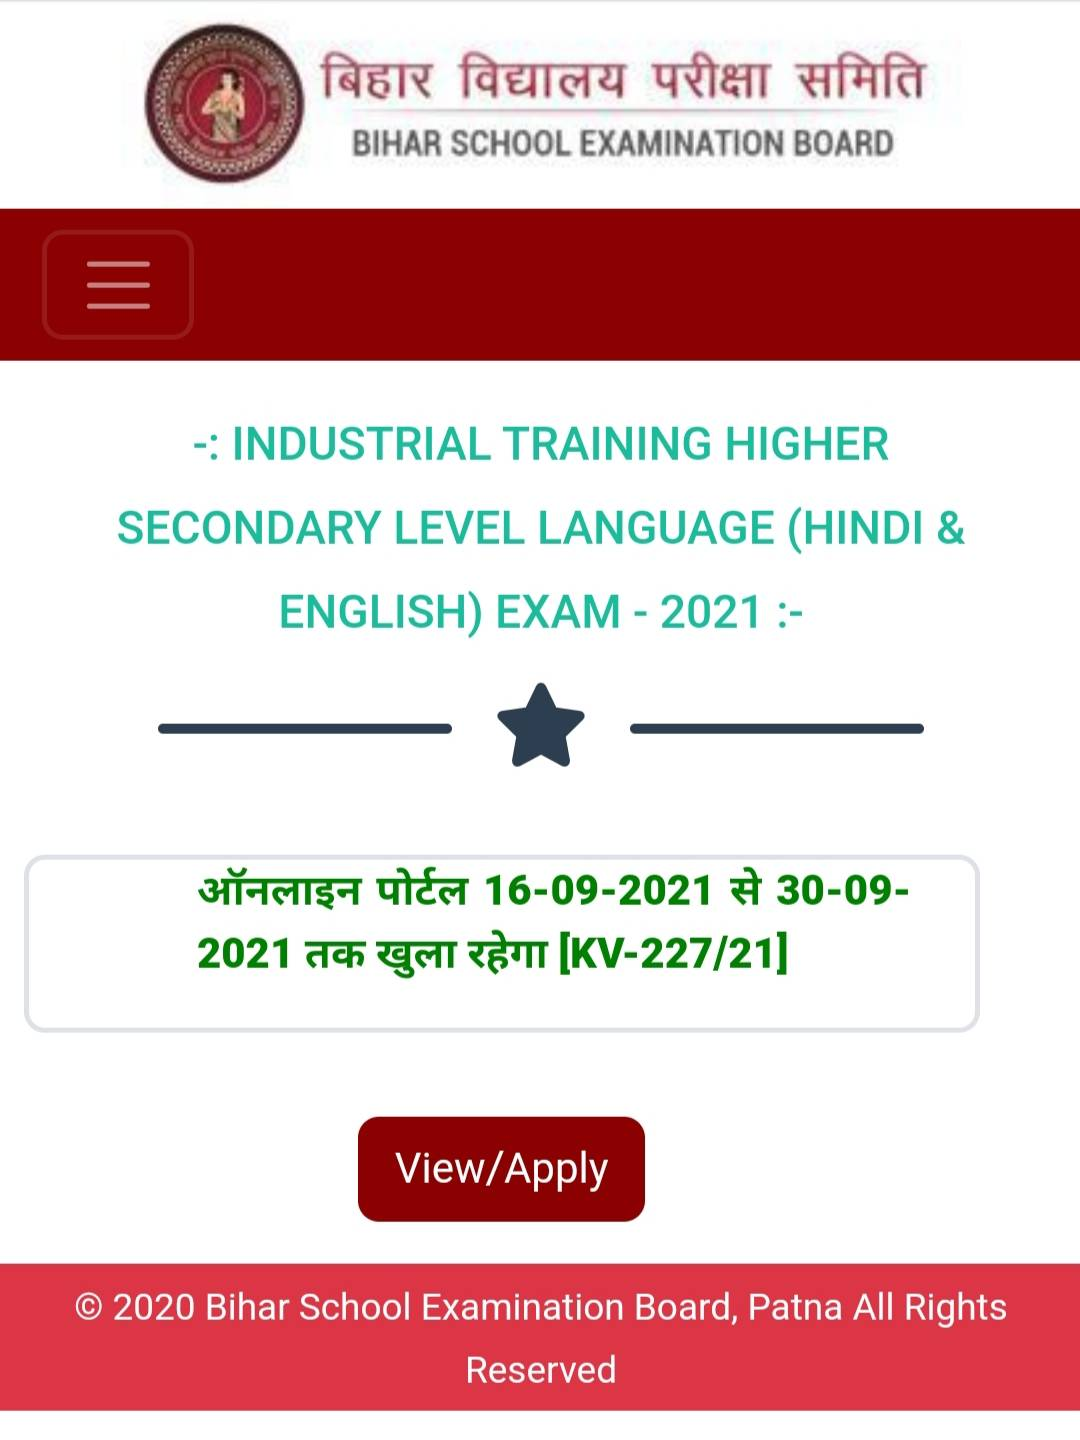 How to Apply Online for SAV Admission